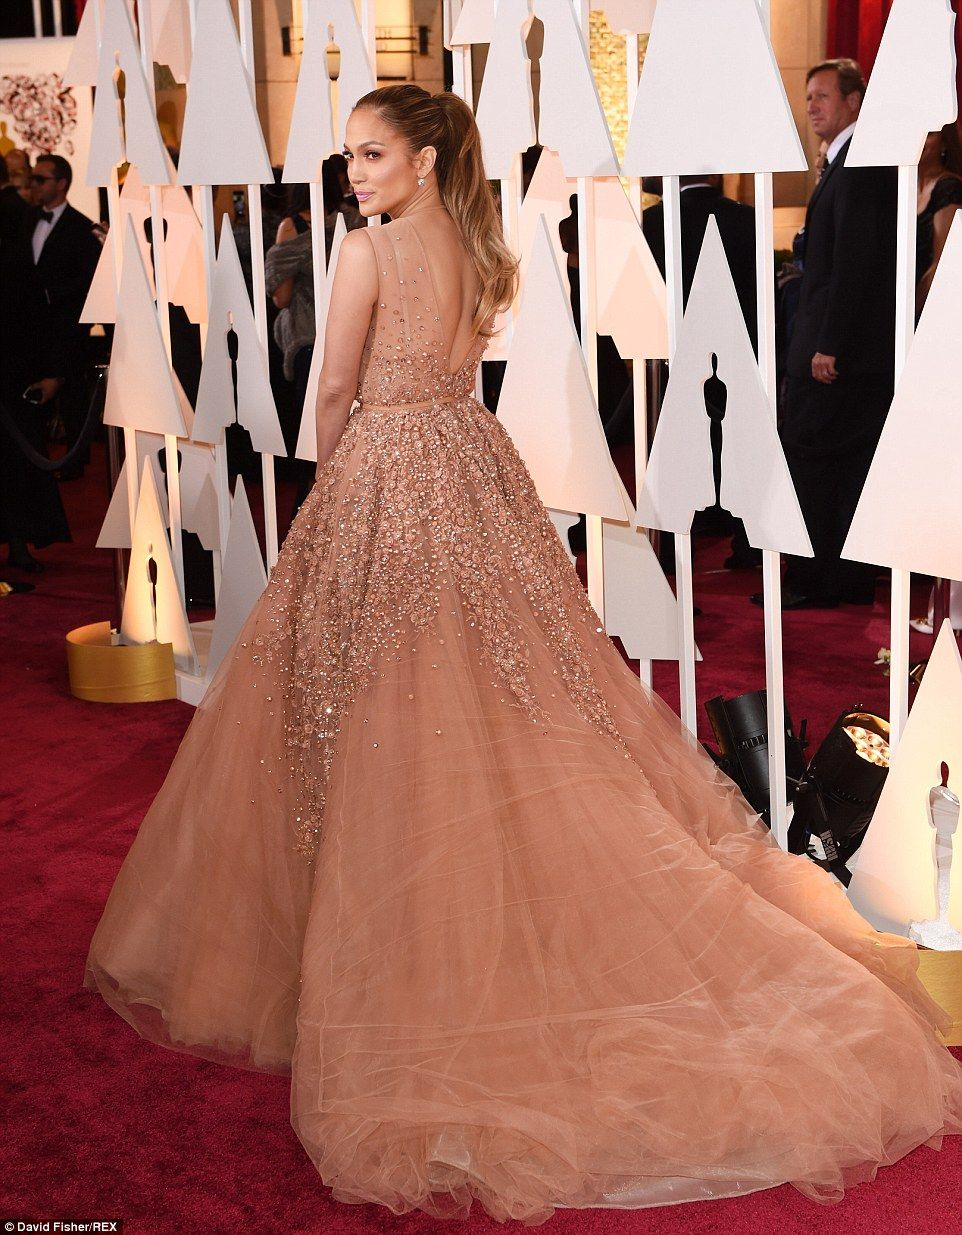 Jlo battles extreme cleavage and huge train at the oscars stylish